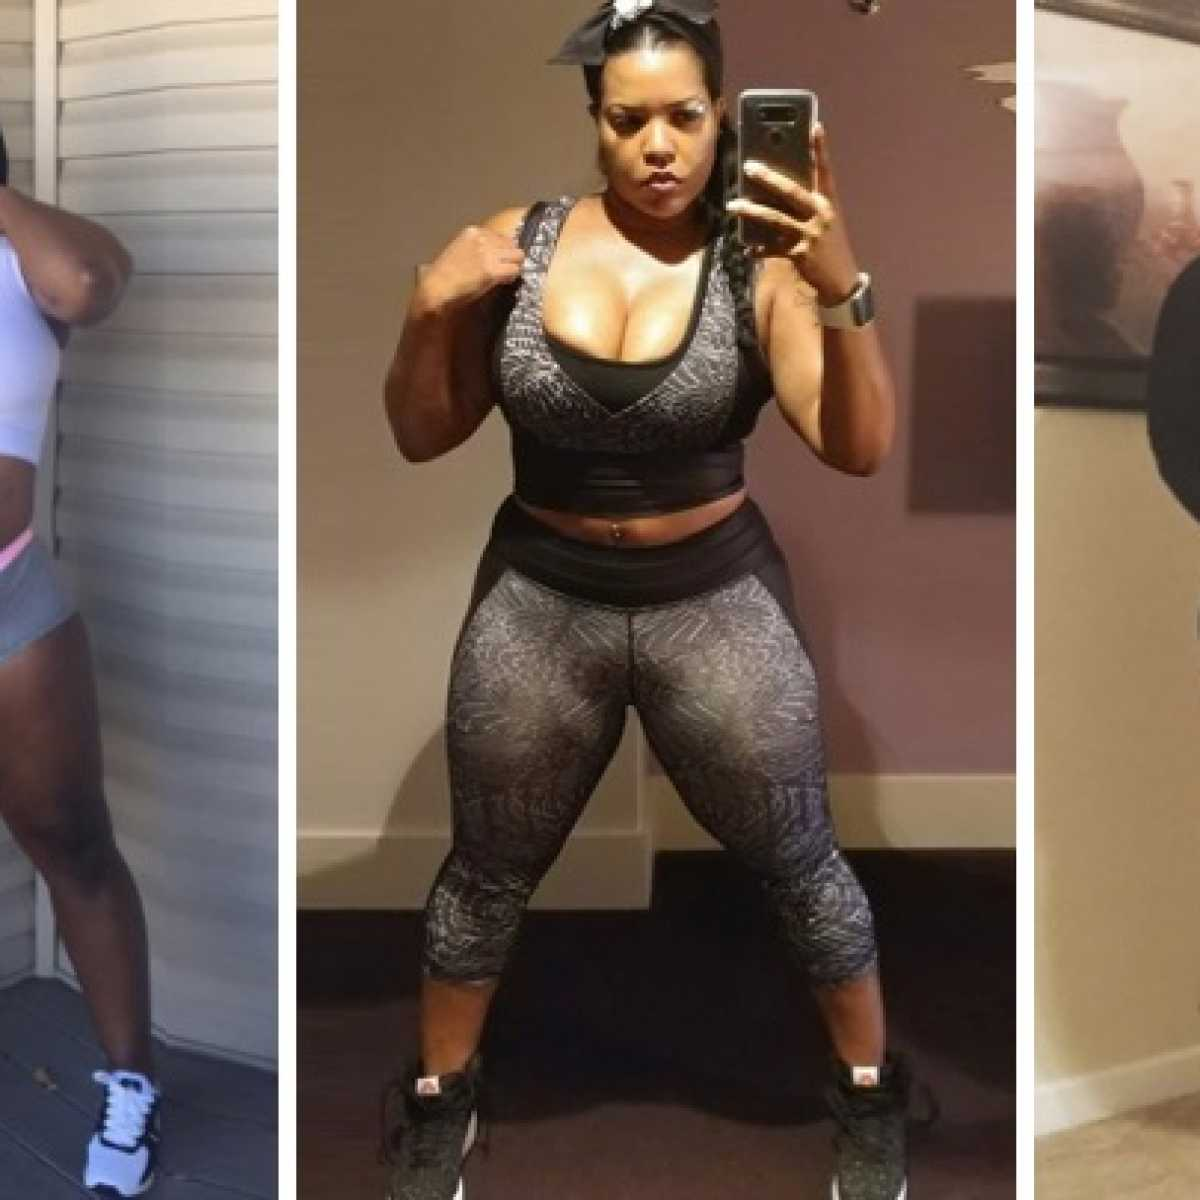 The 200-Pound Club: Women Who Redefine Weight | BlackDoctor